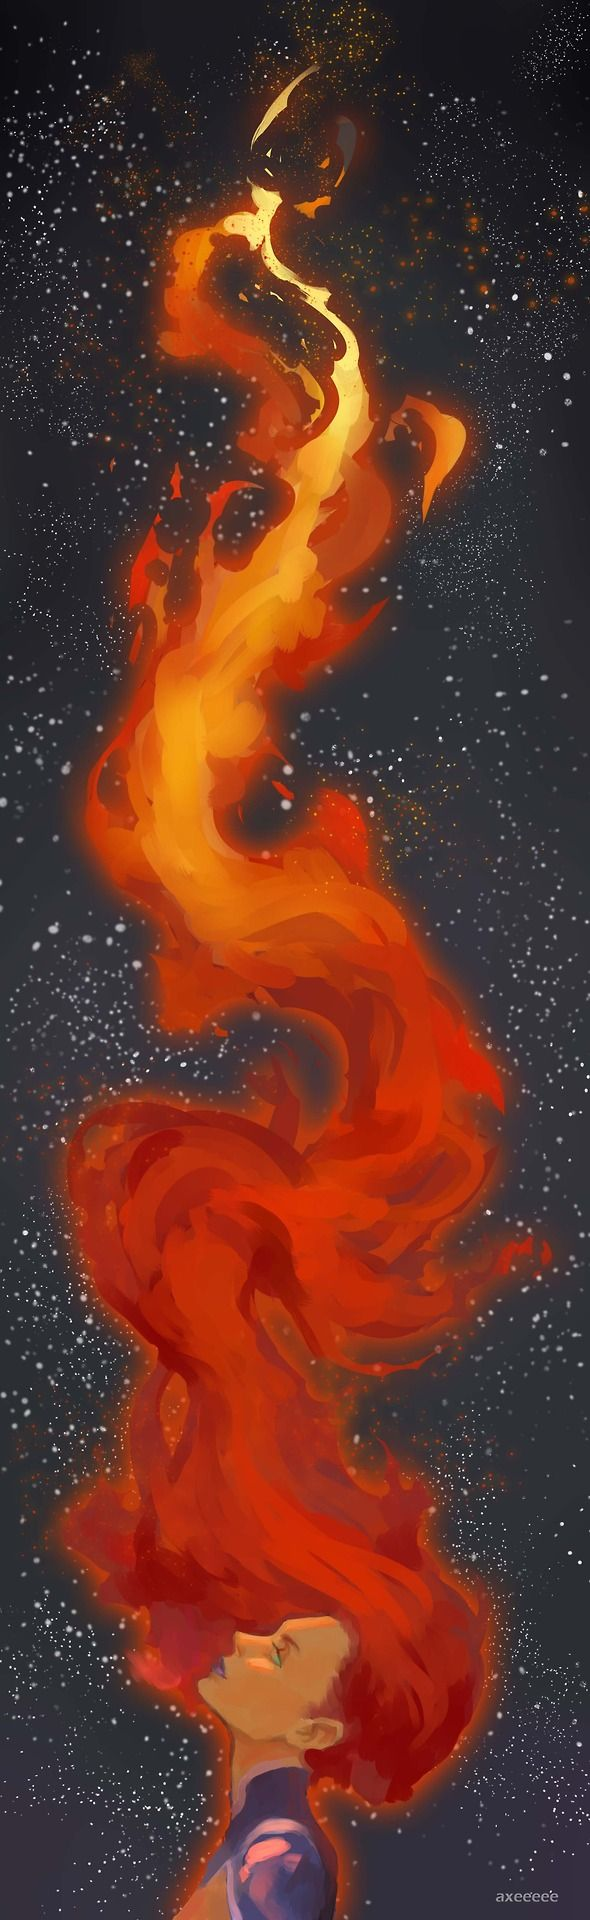 Drawn volcano fire 134 hair best Fire on